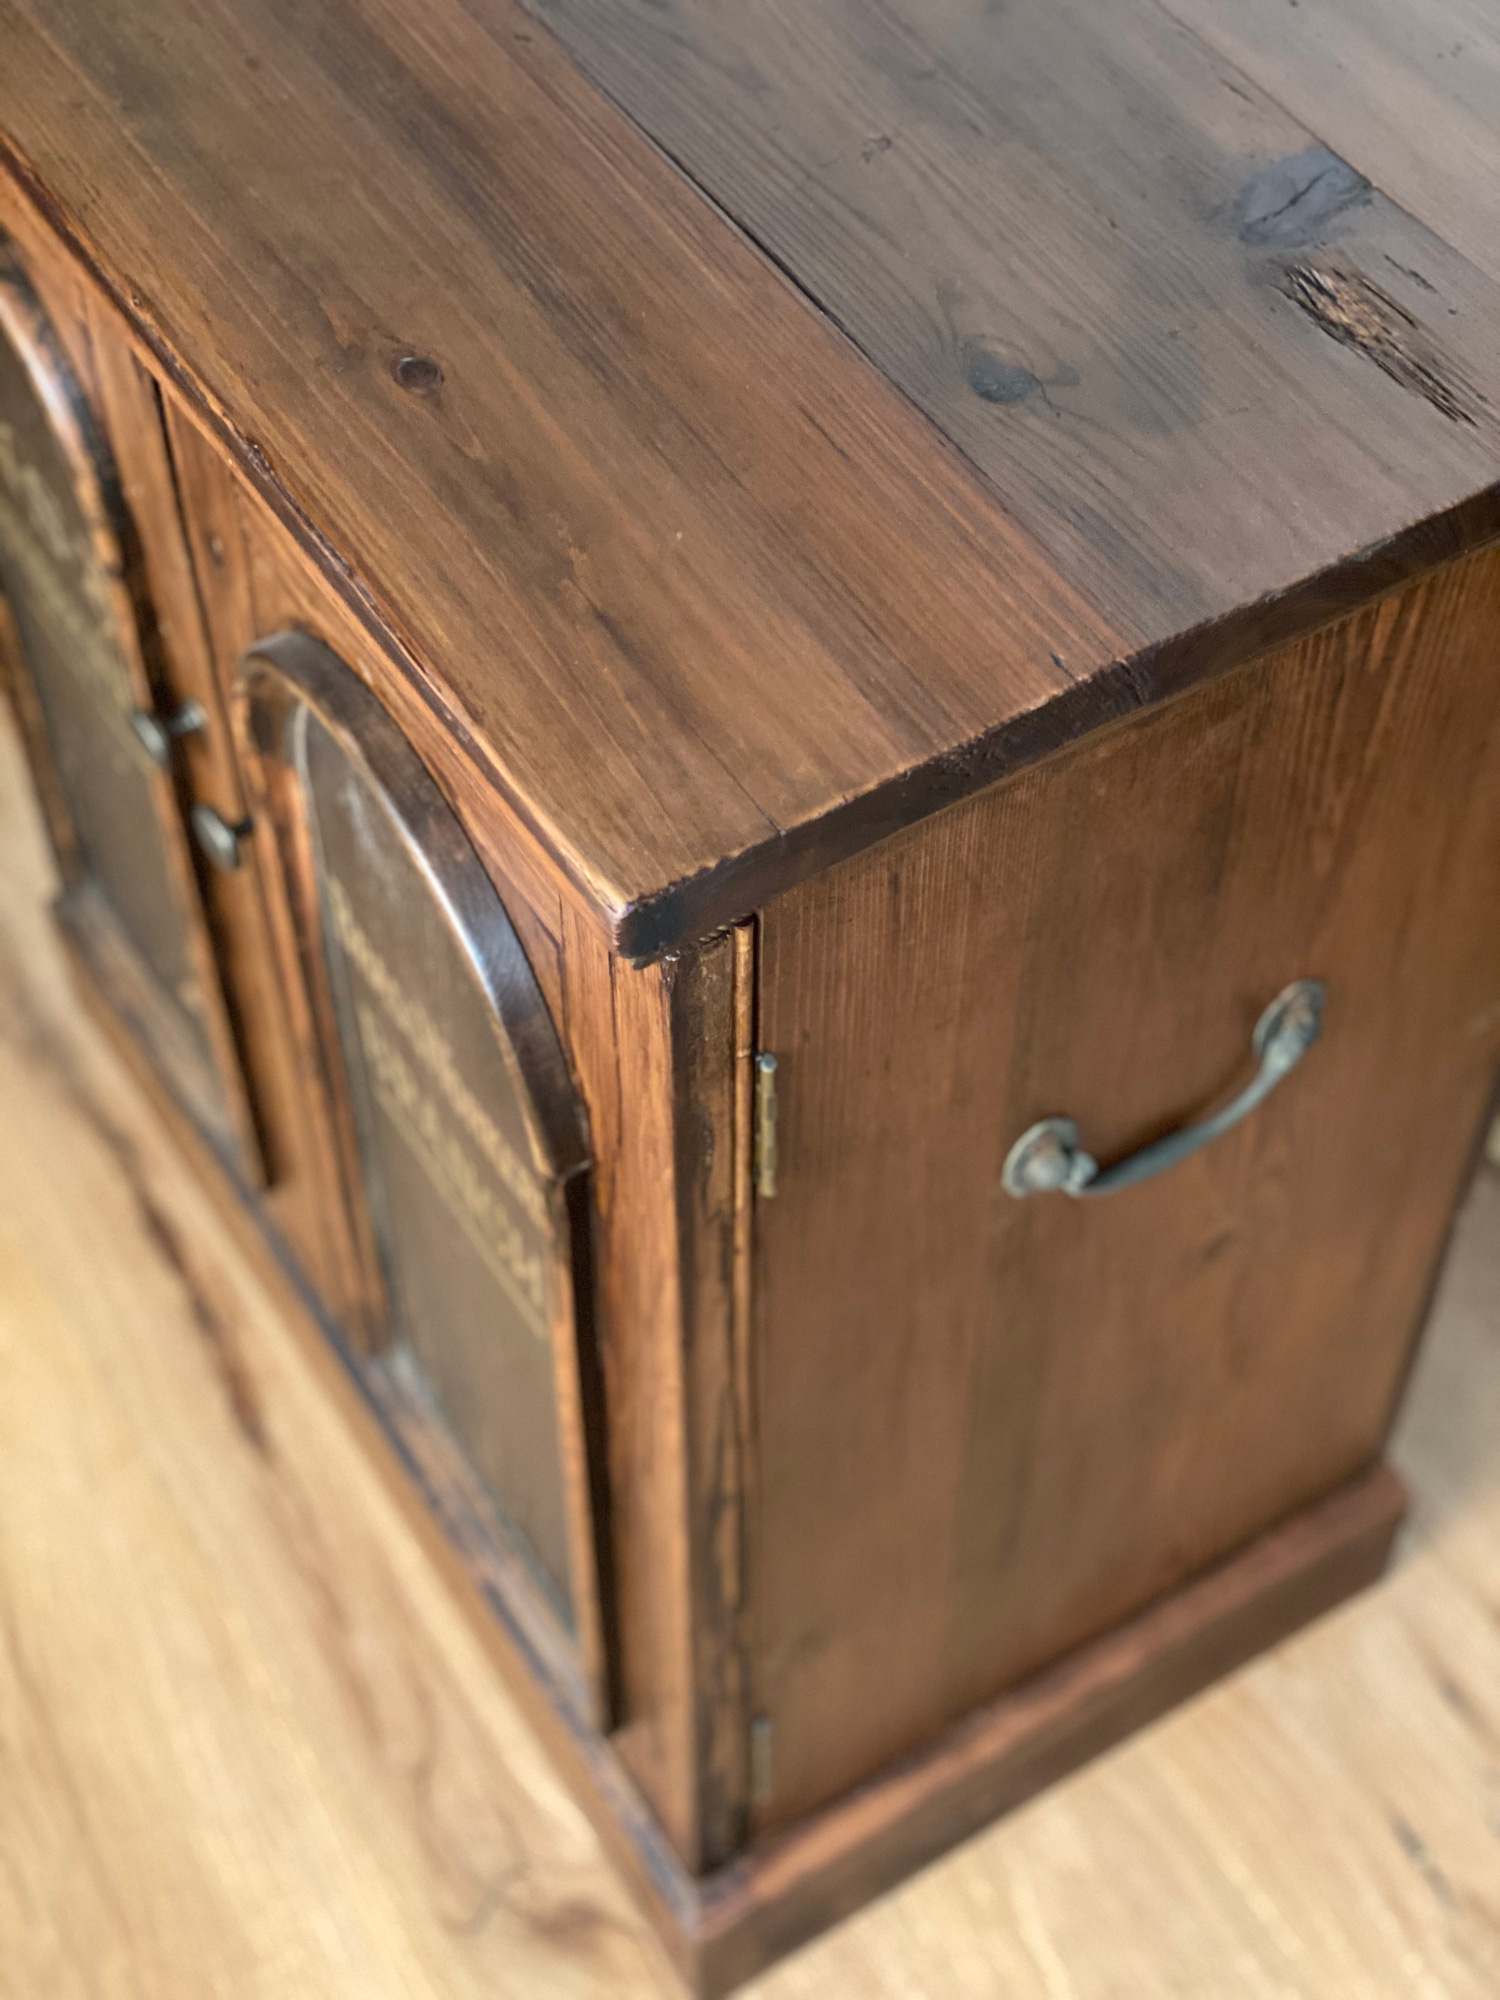 Rustic Sideboard worktop detail